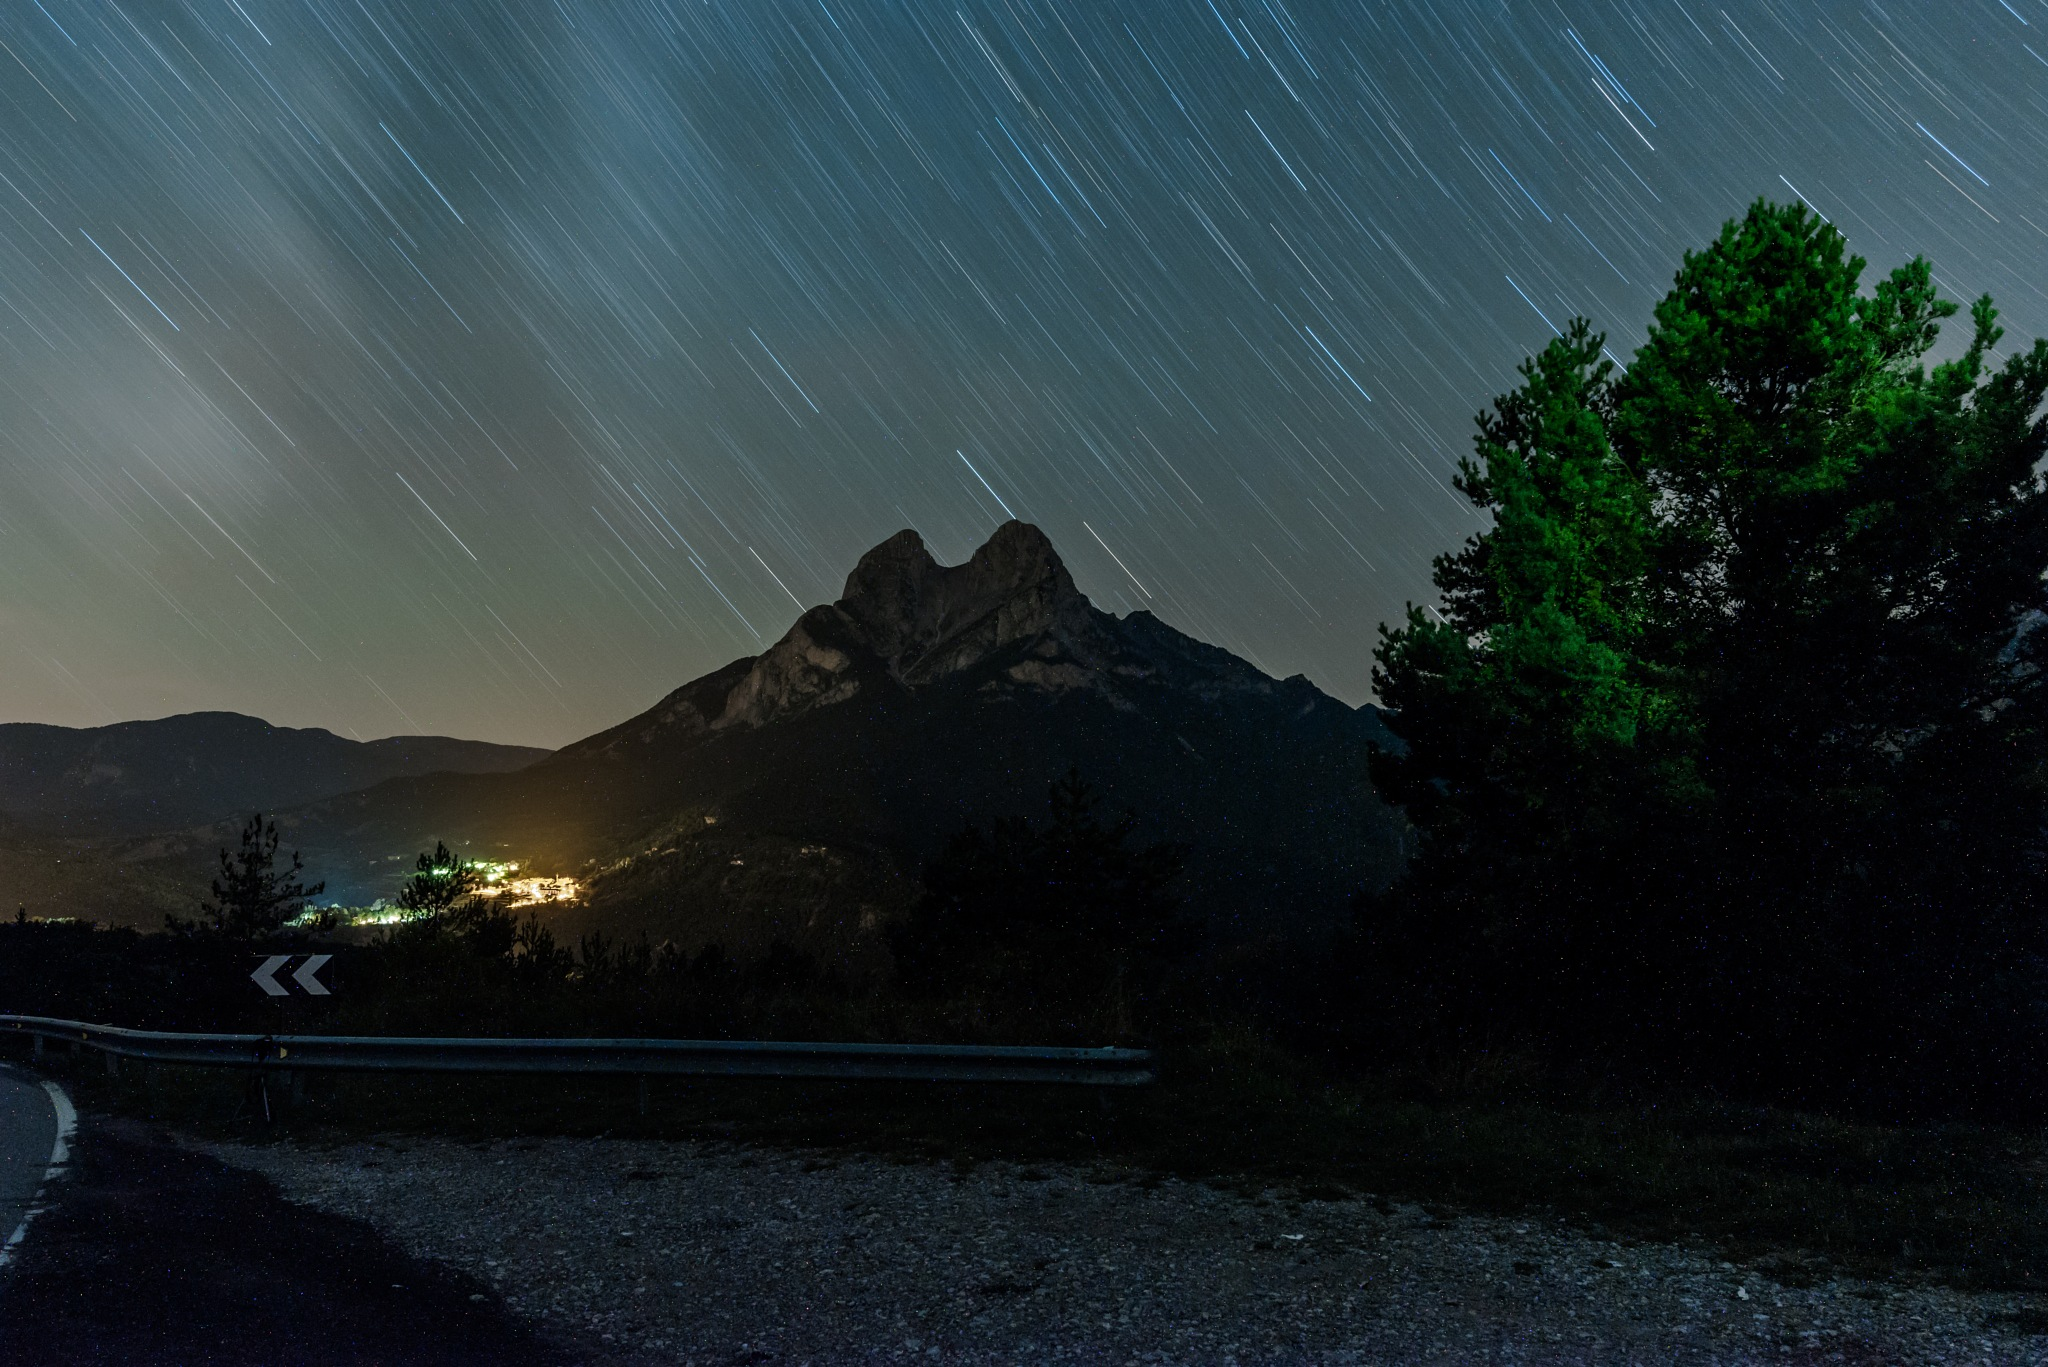 Long exposure in Iconic mountain by Rubèn Jaume Montes Garcia